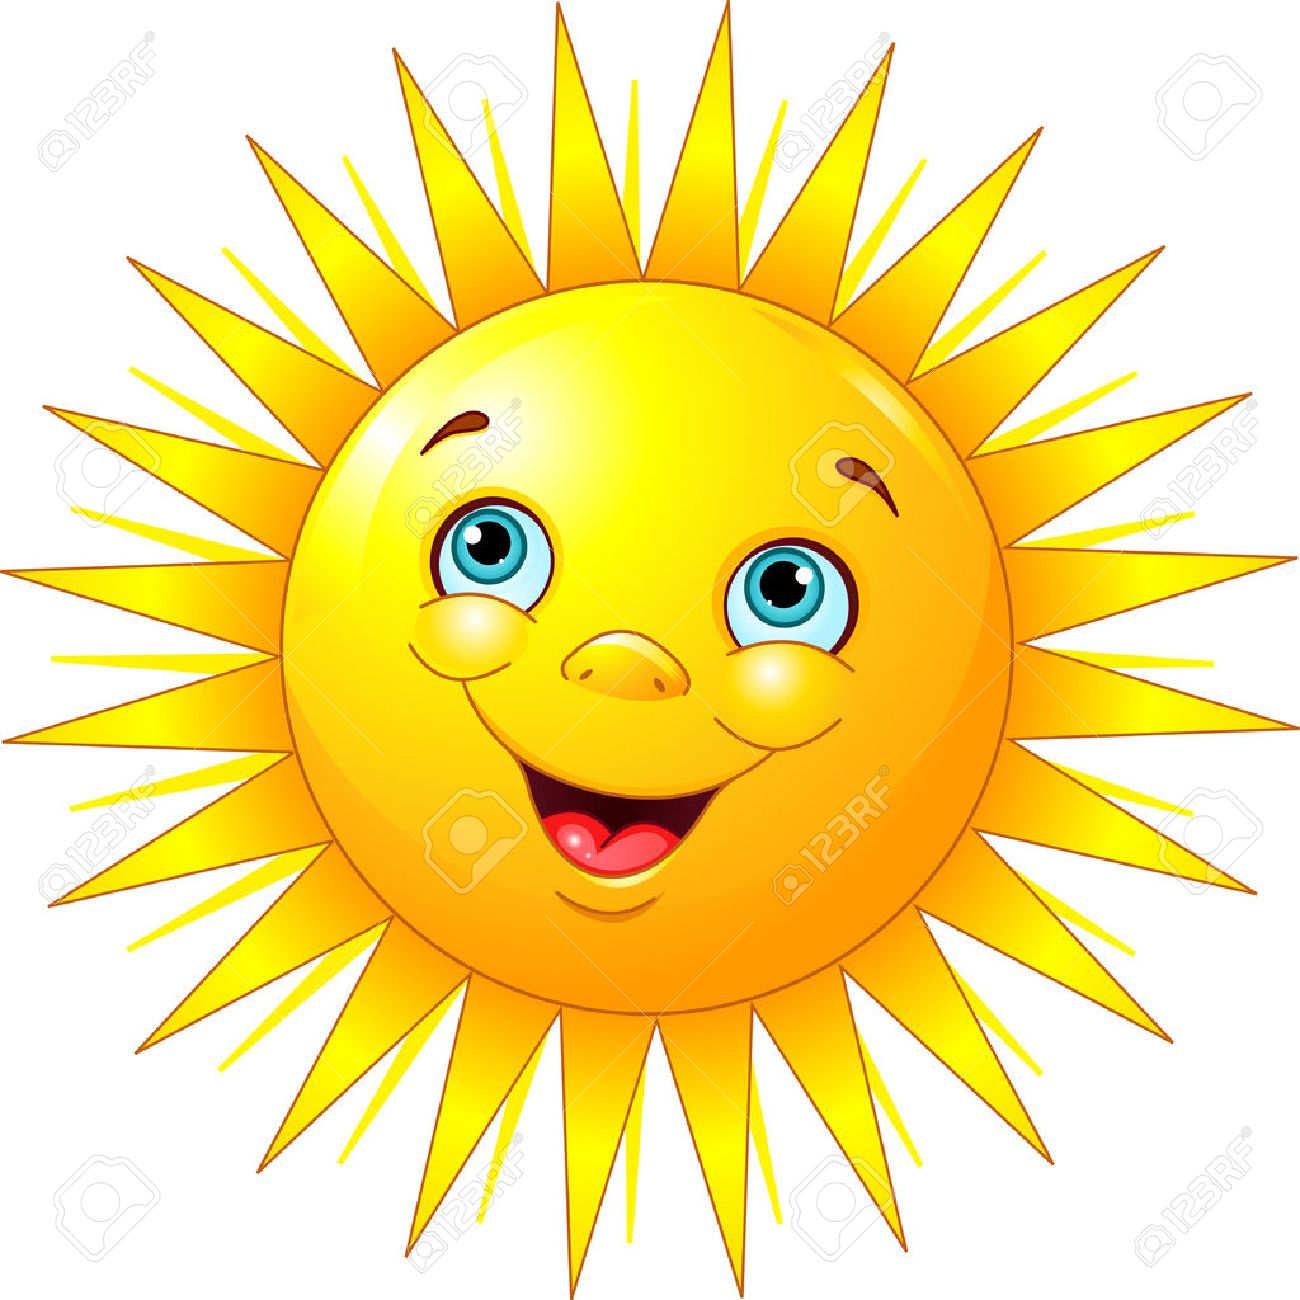 illustration of smiling sun character royalty free cliparts vectors rh 123rf com free clip art sun free clip art sunday school